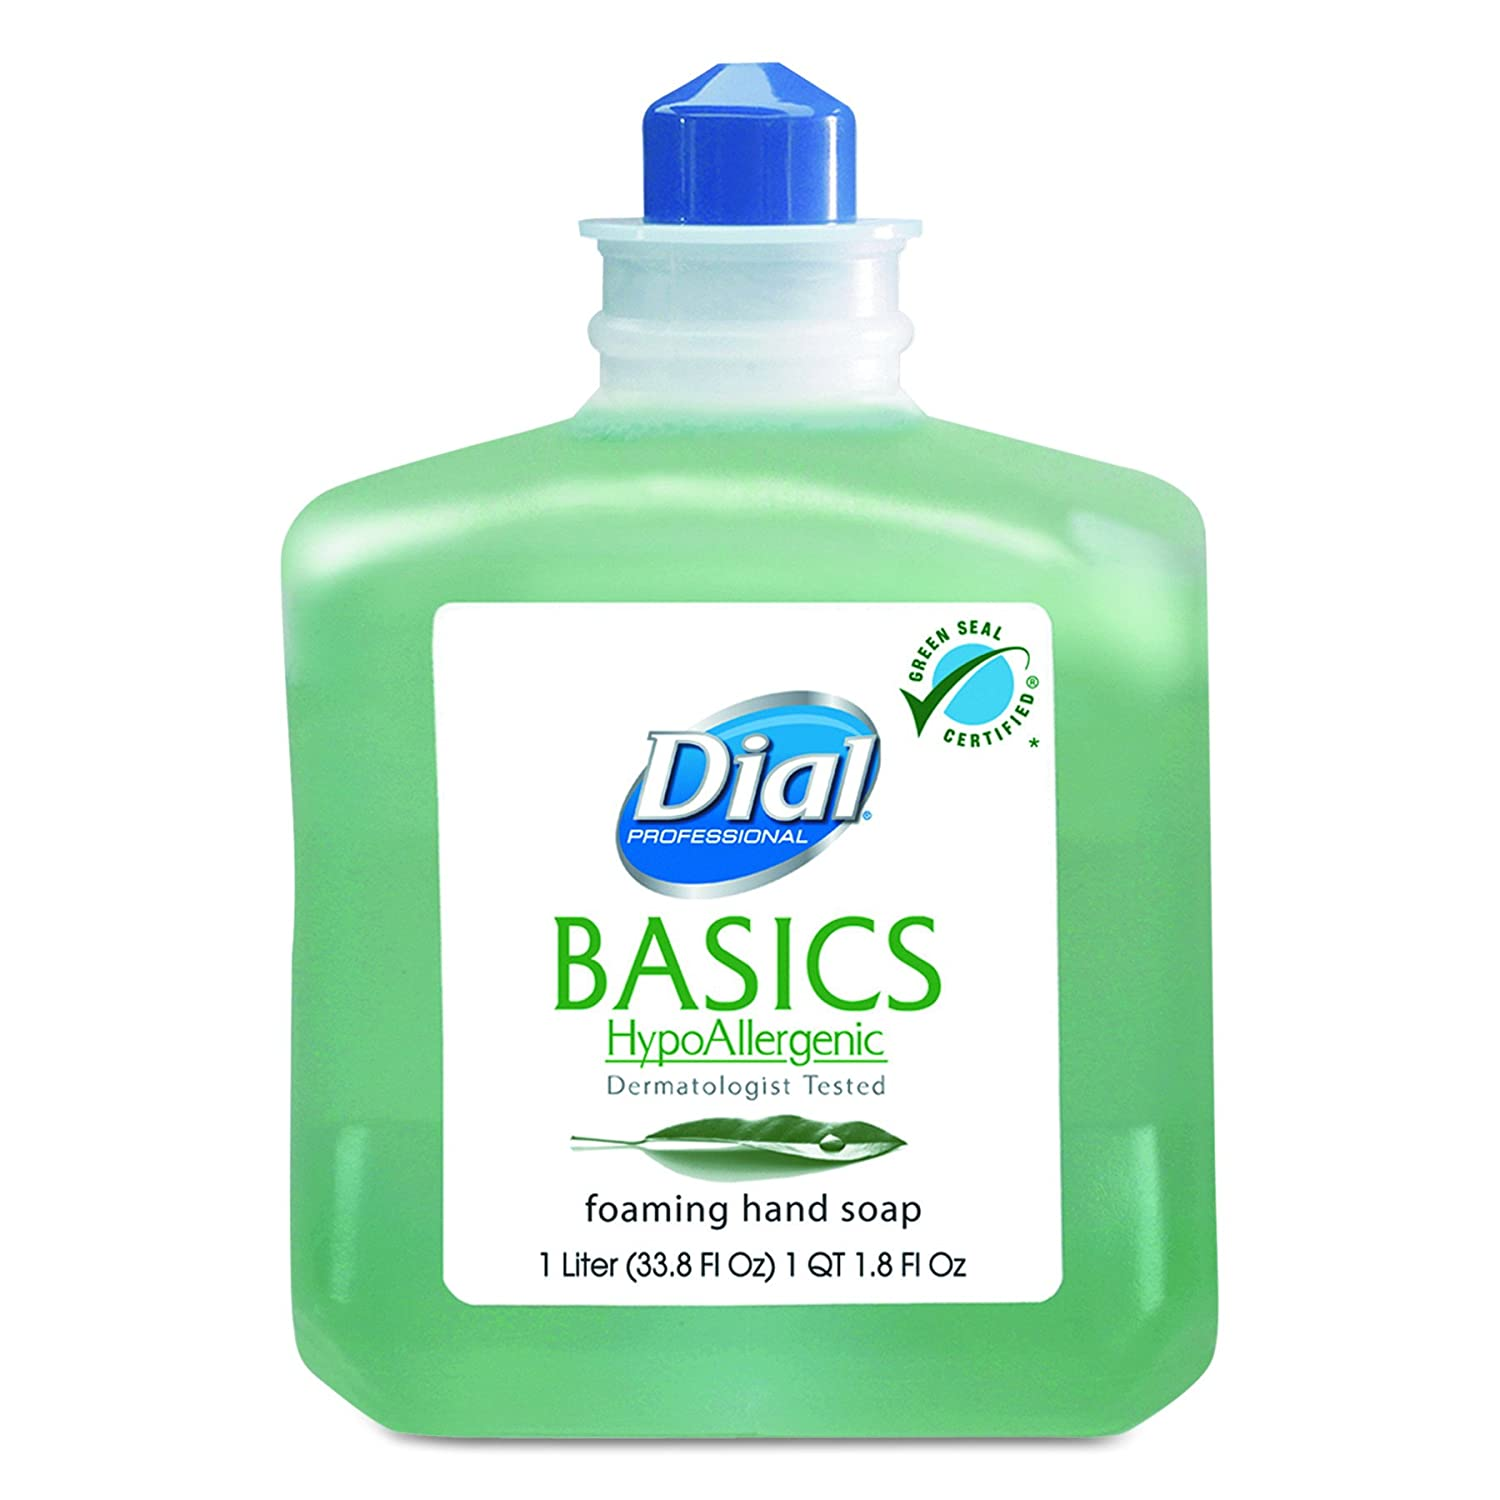 Dial Professional 06060CT Basics Foaming Hand Wash, Refill, 1000mL, Honeysuckle (Case of 6)